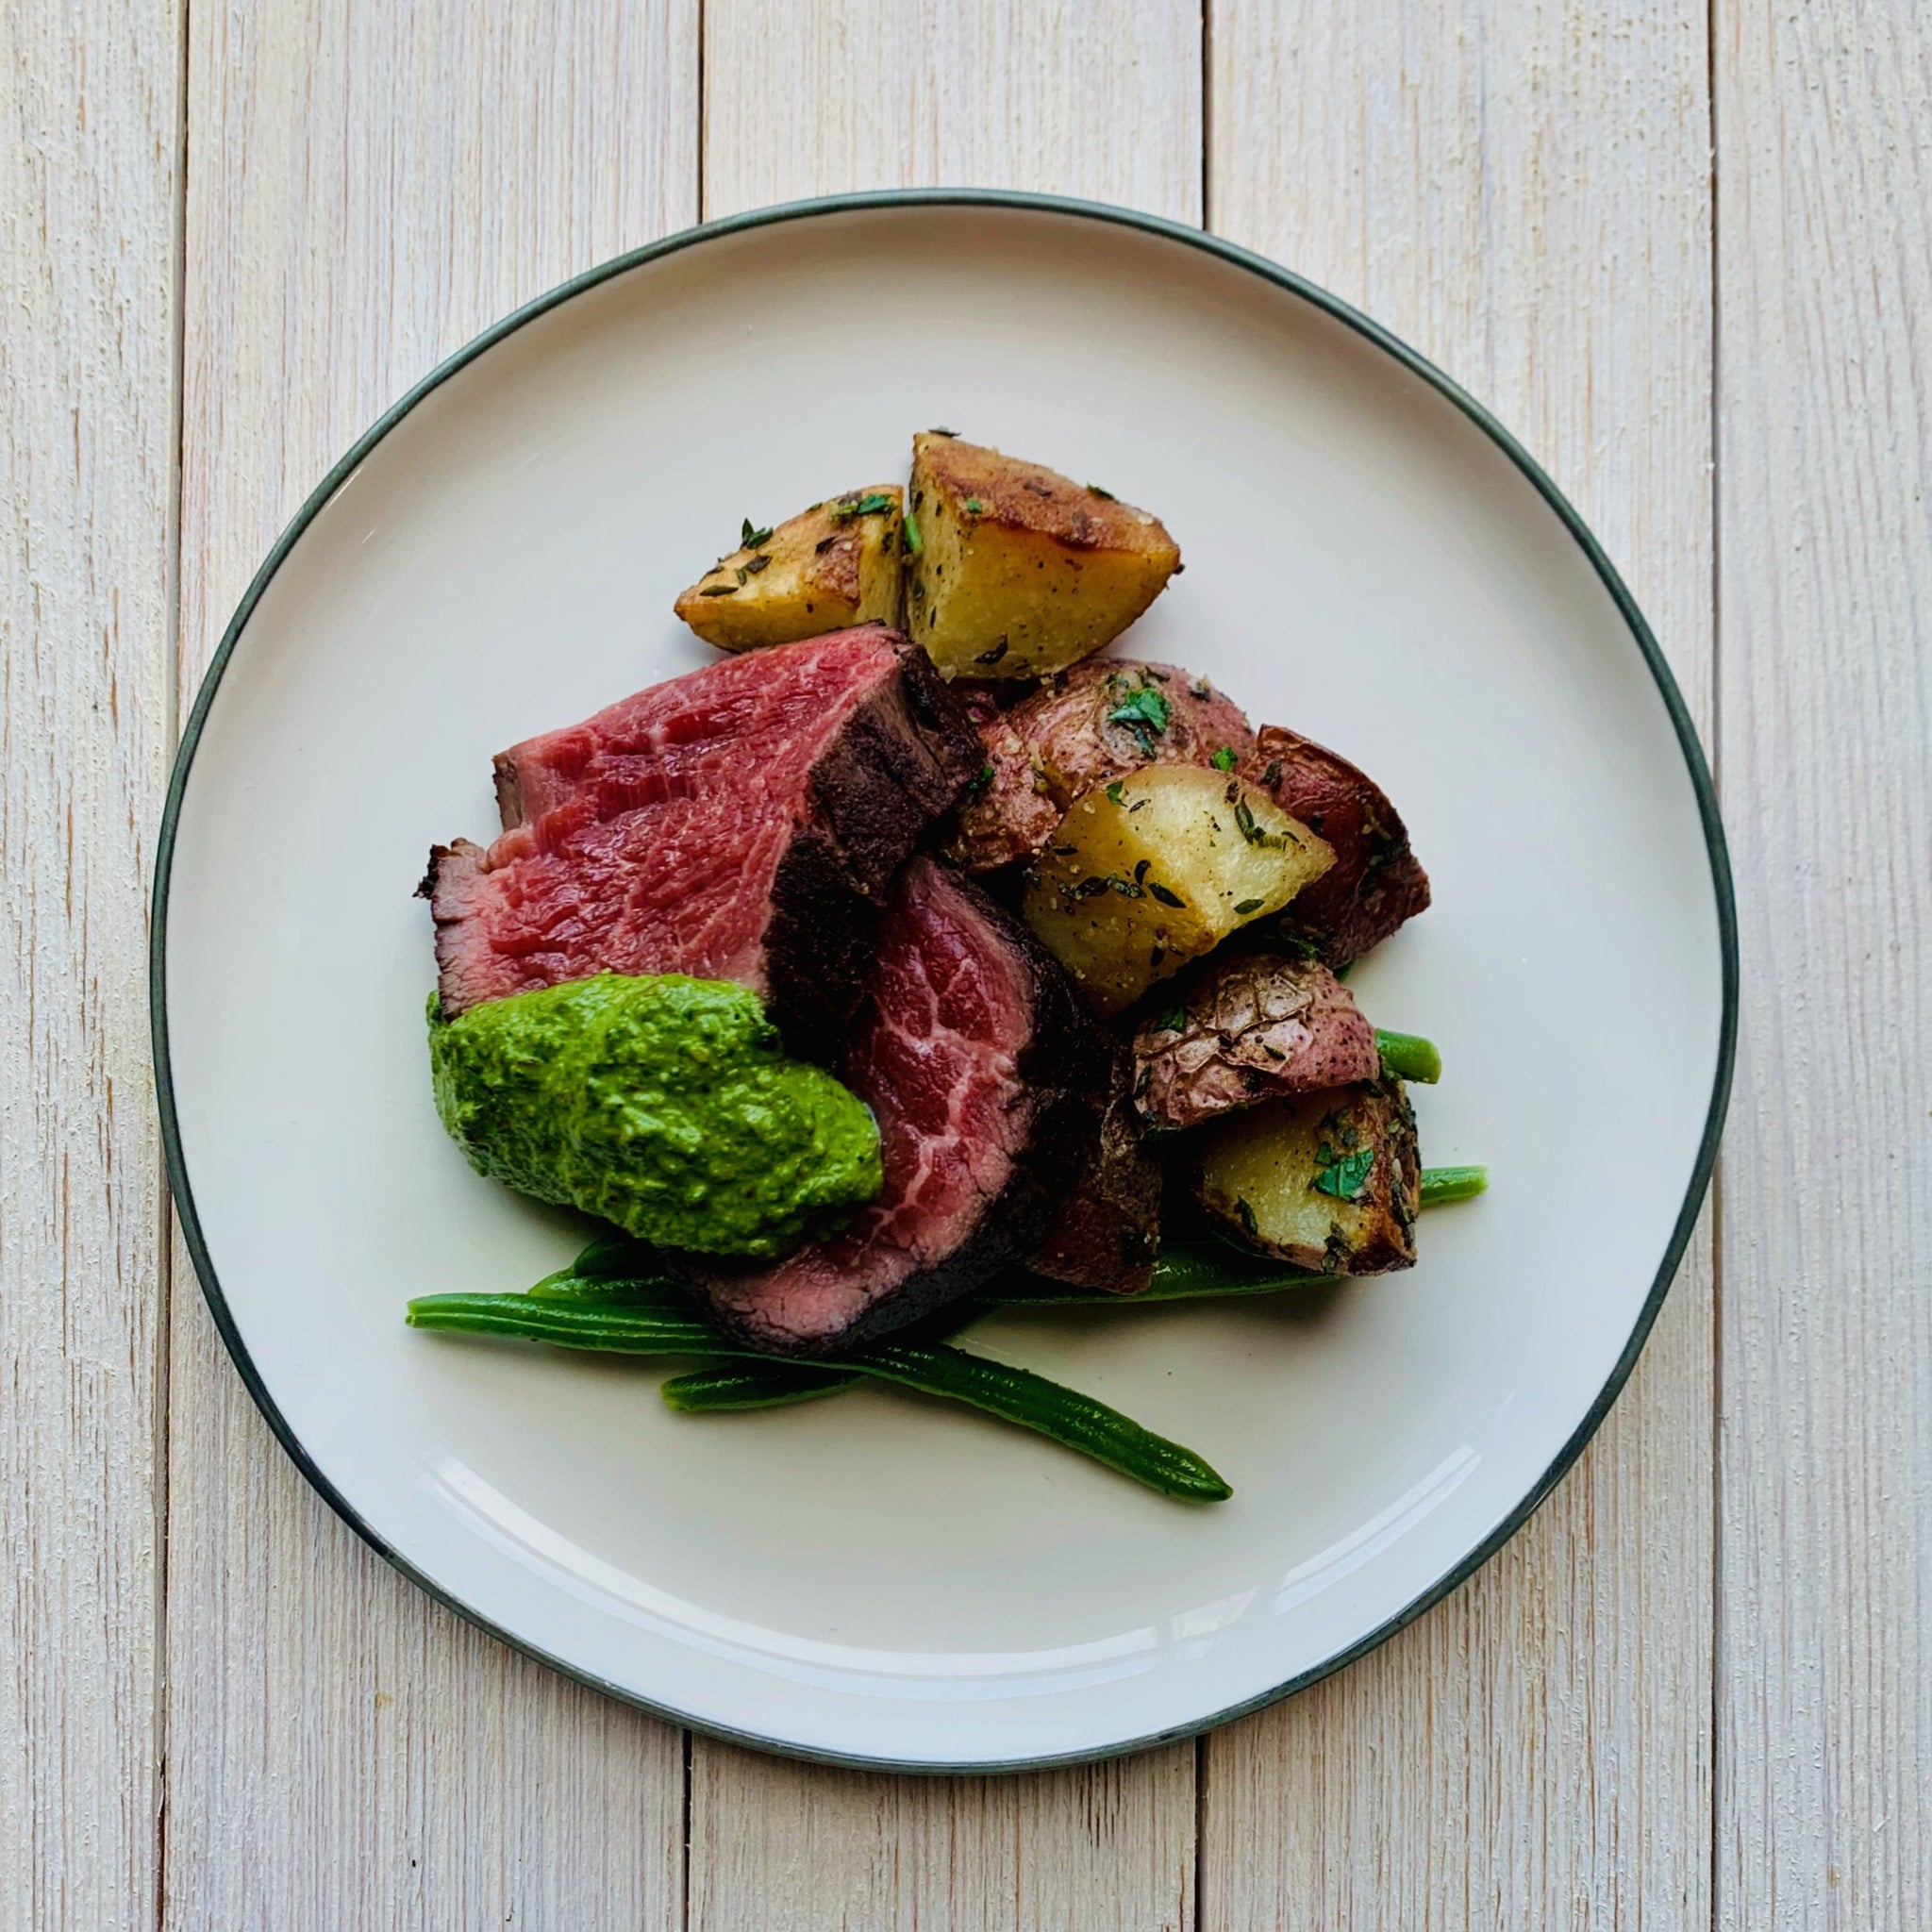 Seared Filet with Walnut Pesto, Roasted New Potatoes & French Green Beans (GF)